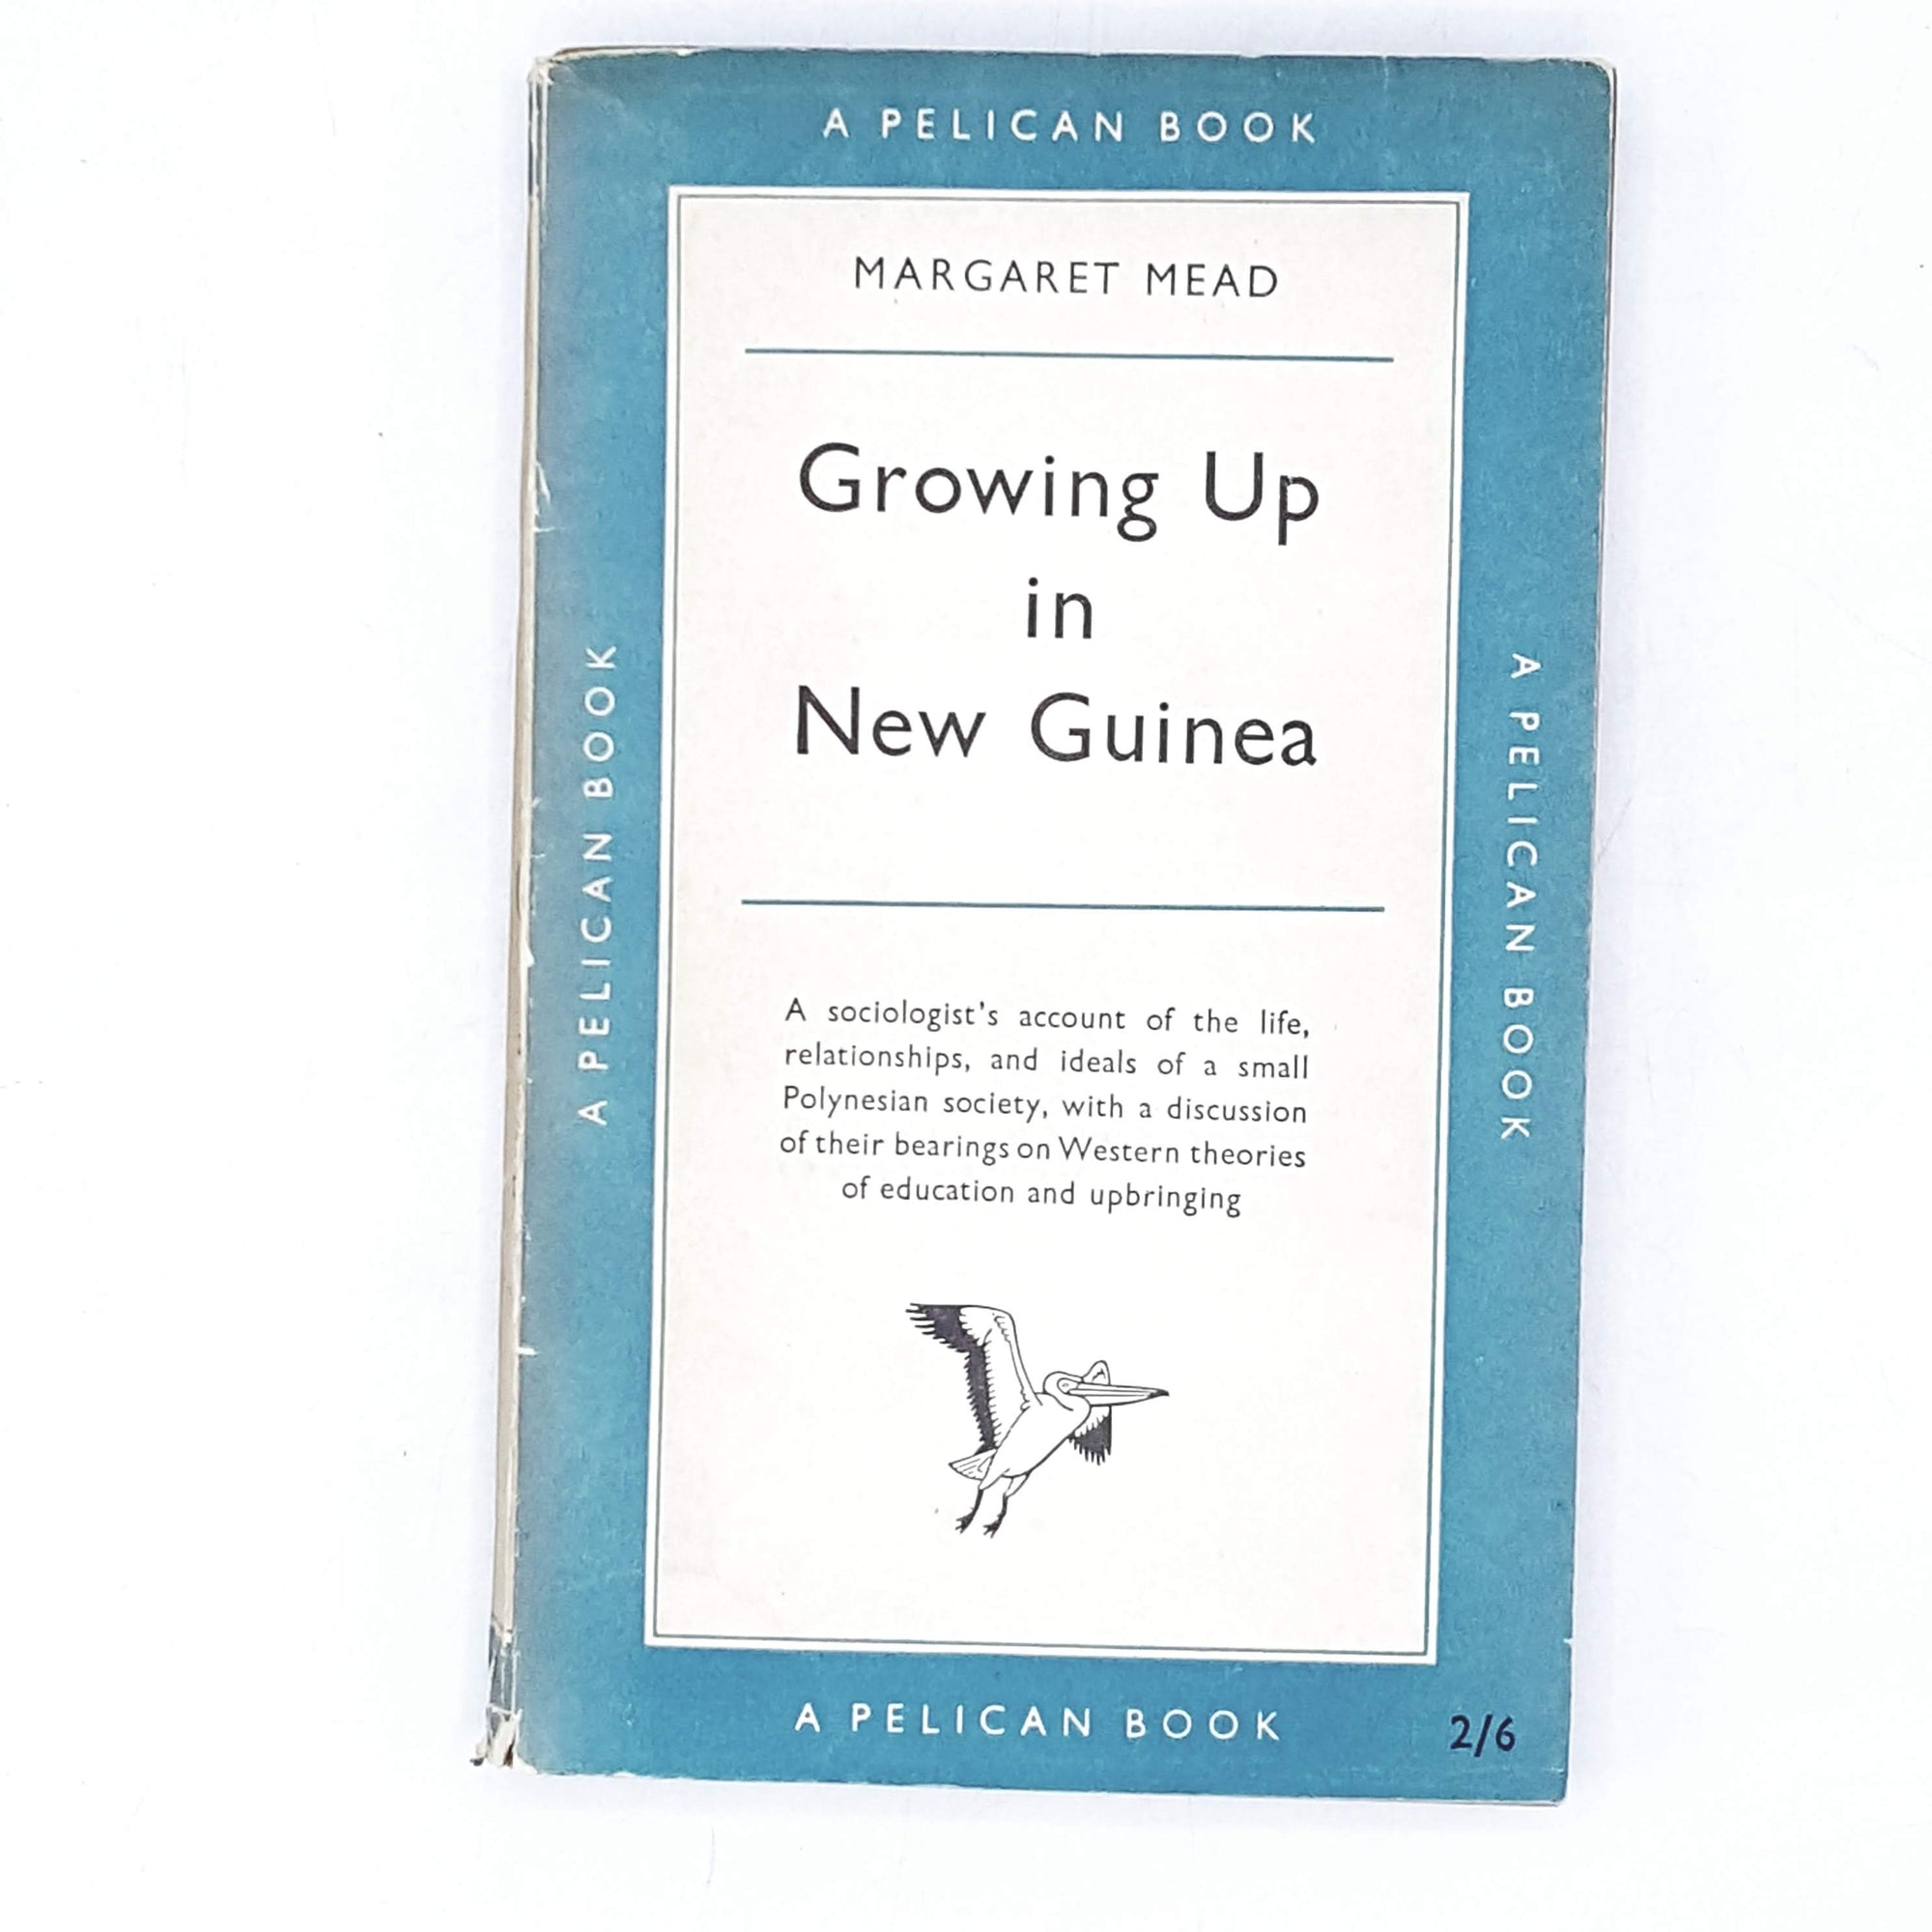 Vintage Pelican Growing Up in New Guinea by Margaret Mead 1954